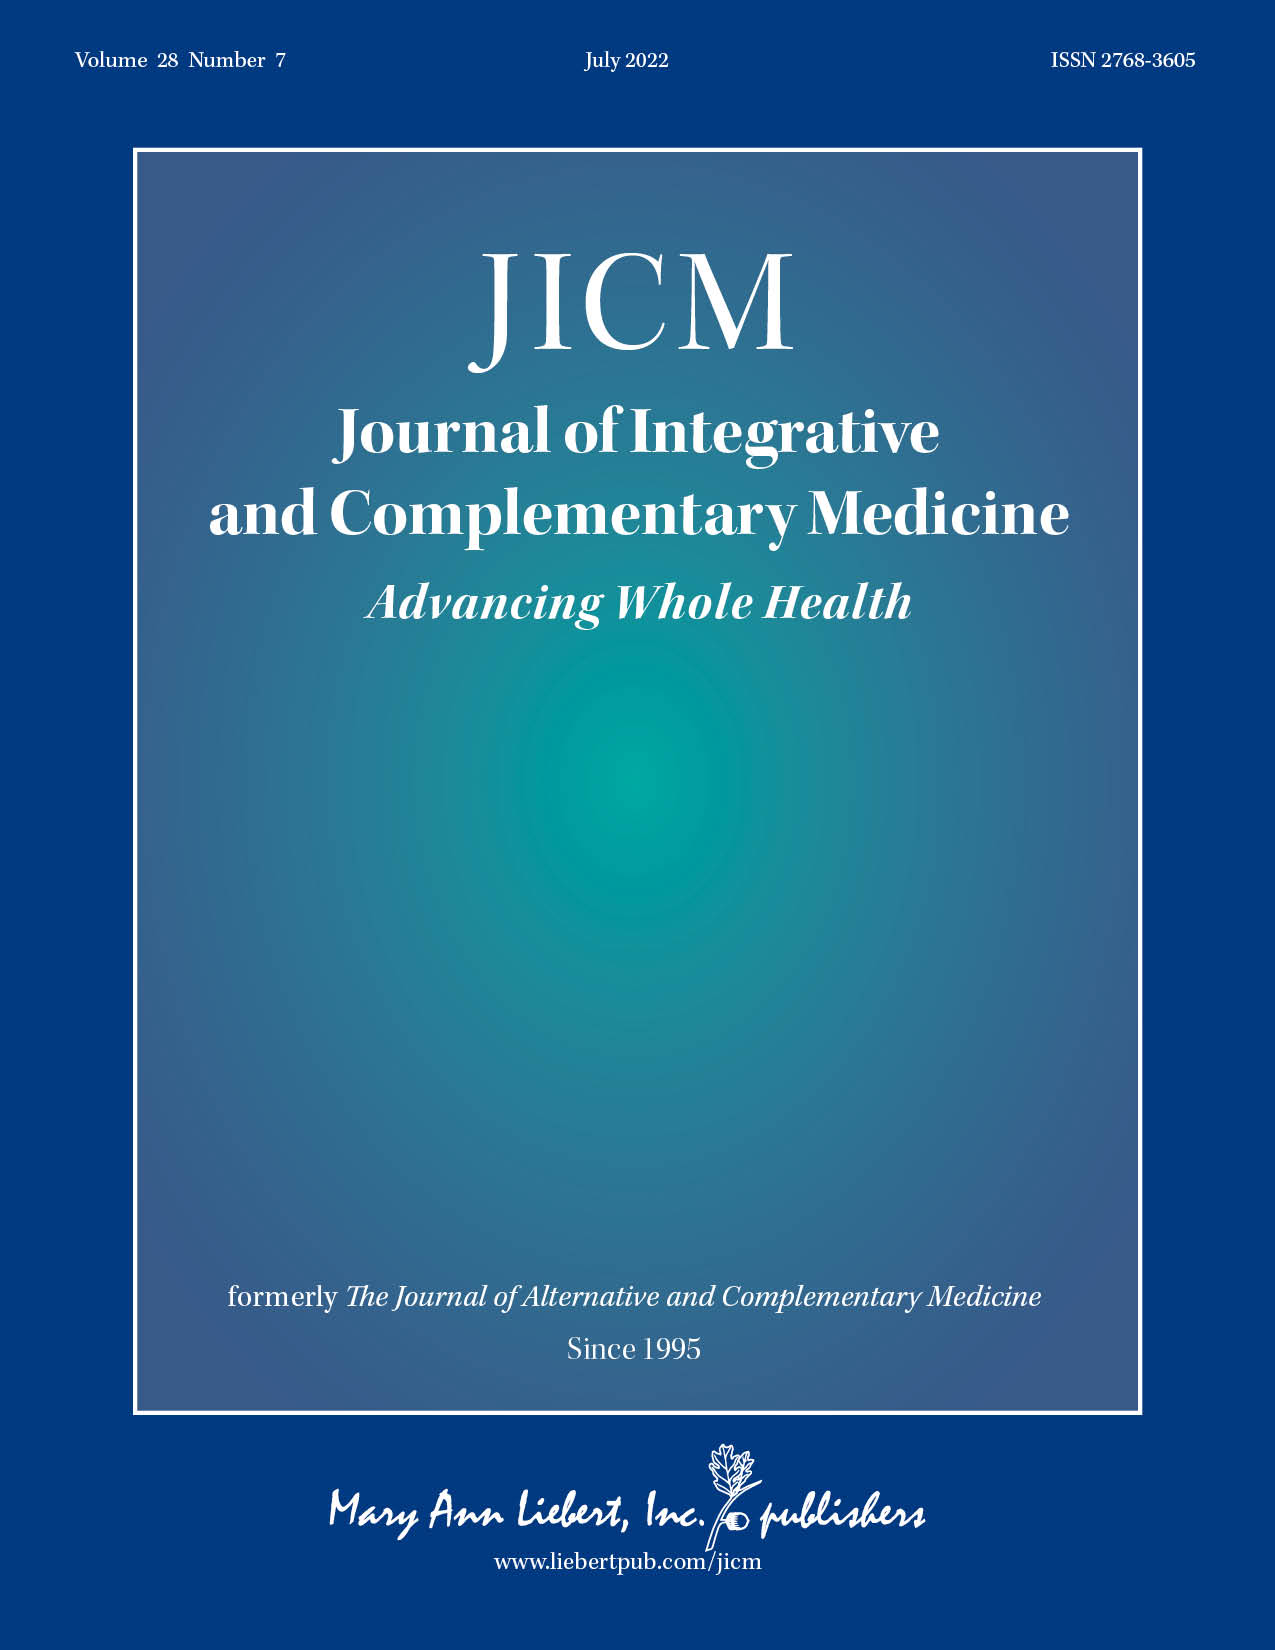 Journal of Alternative and Complementary Medicine, The